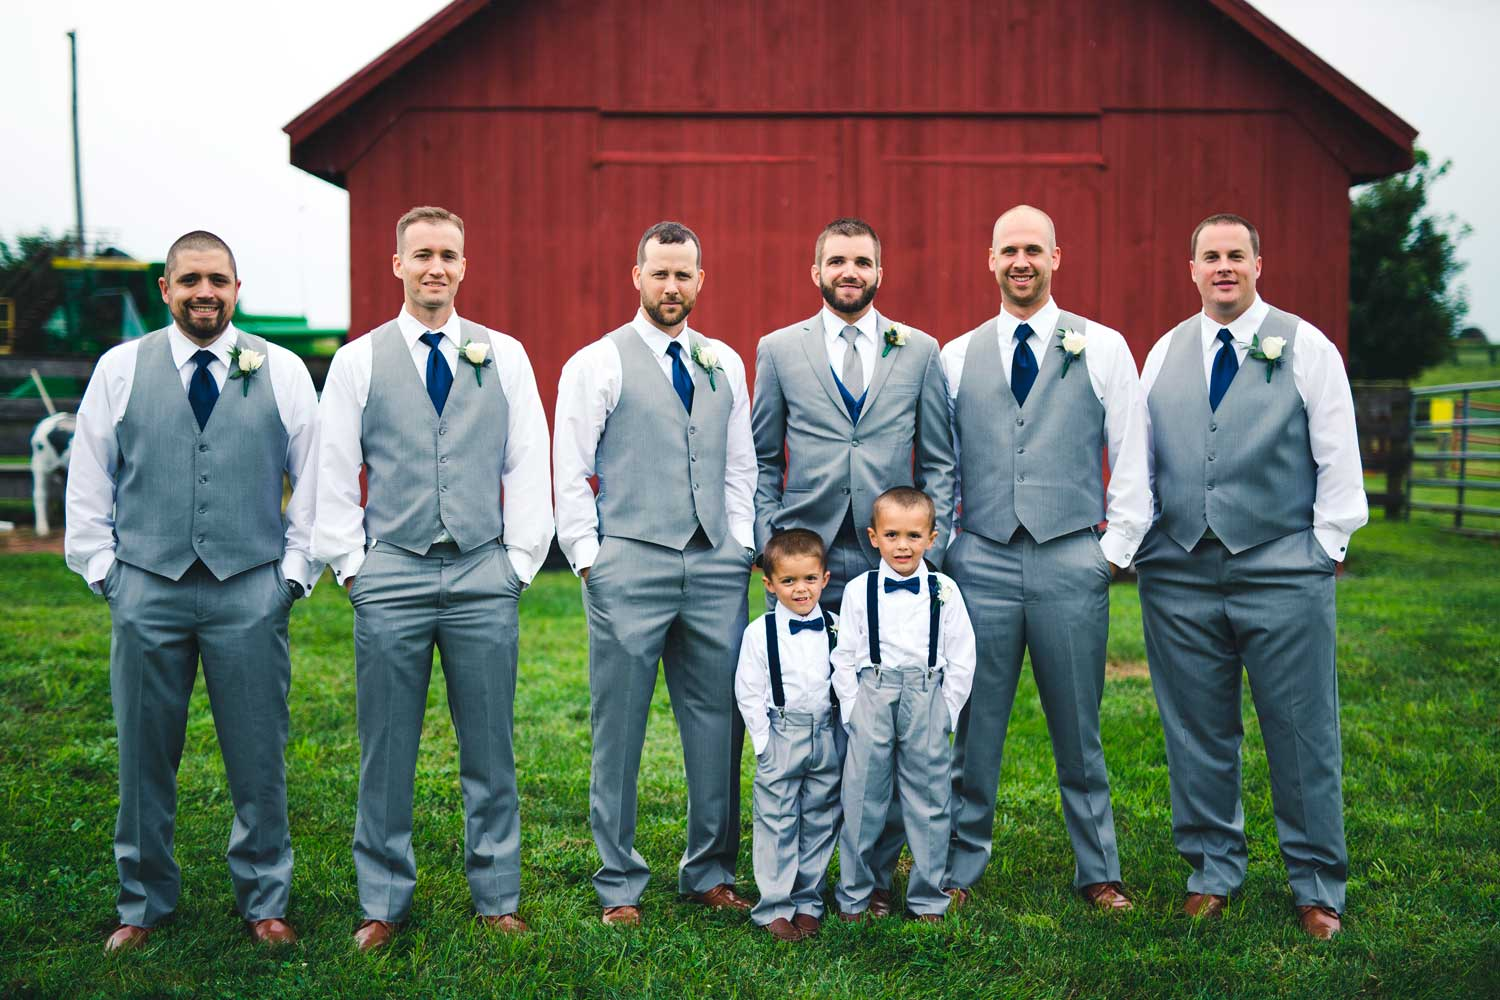 Groomsmen and ring bearers